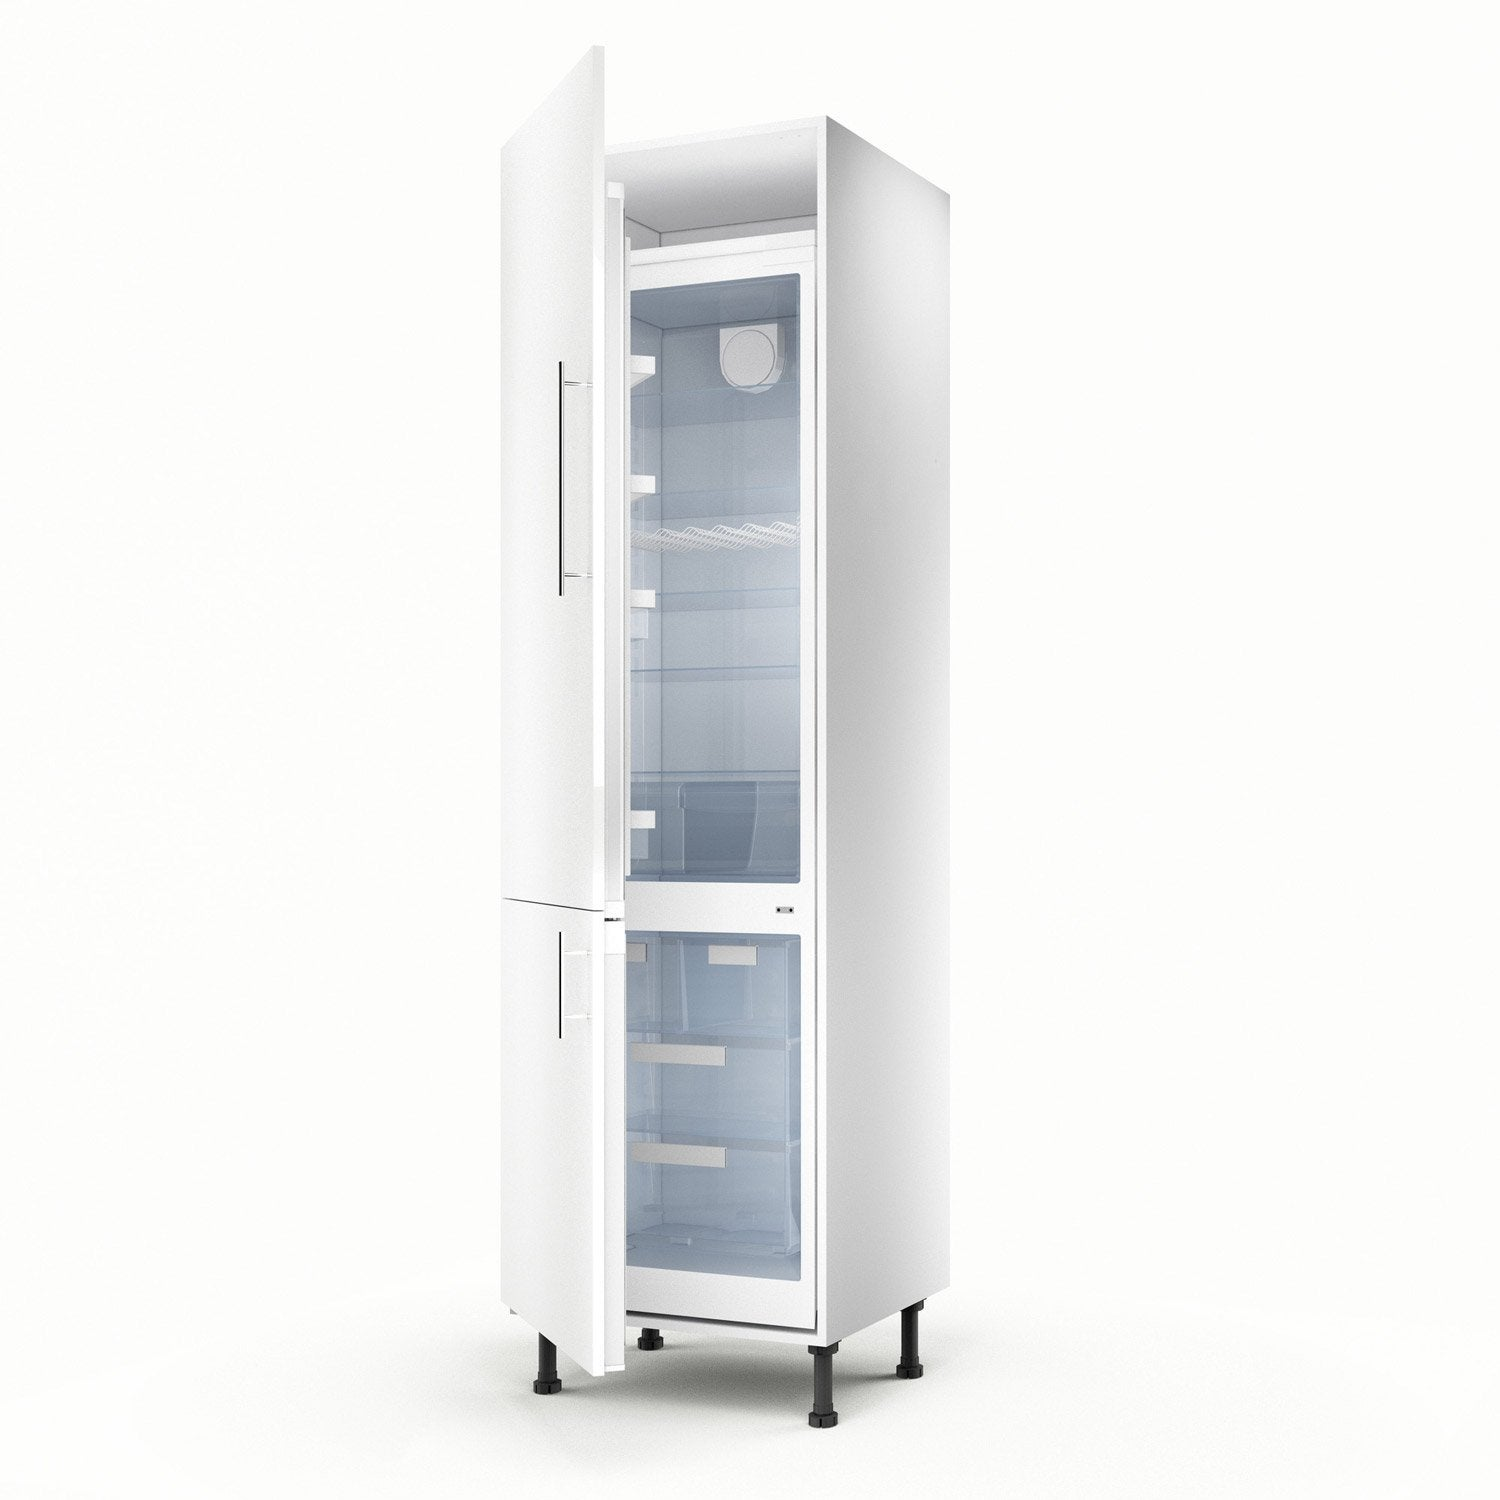 Meuble de cuisine colonne blanc 2 portes rio x for Portes elements cuisine leroy merlin